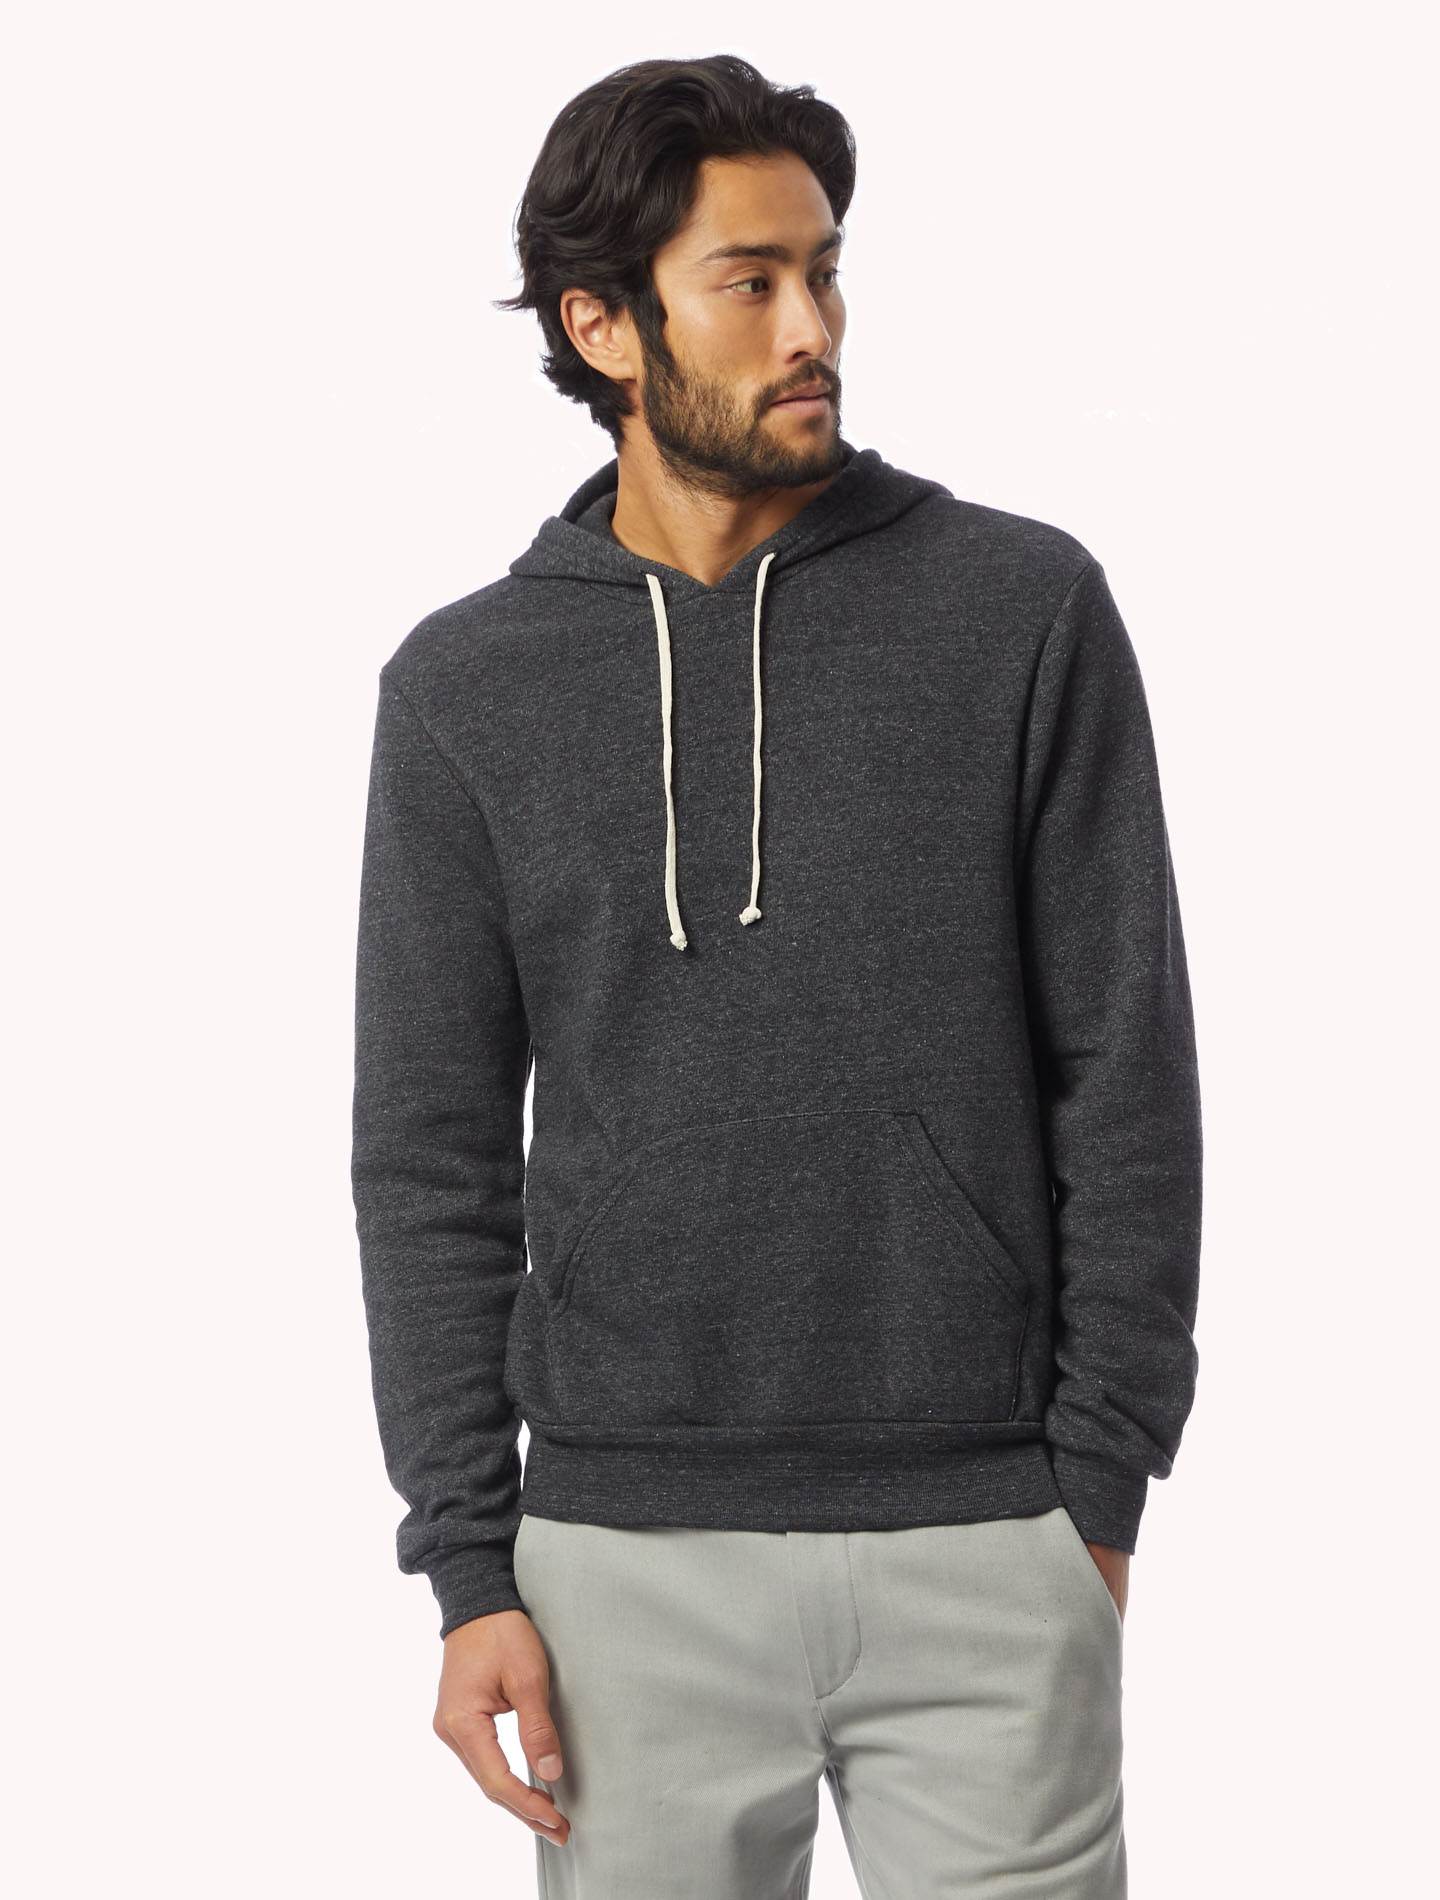 Father's Day Gift Guide // Challenger Eco-Fleece Pullover Hoodie - Alternative